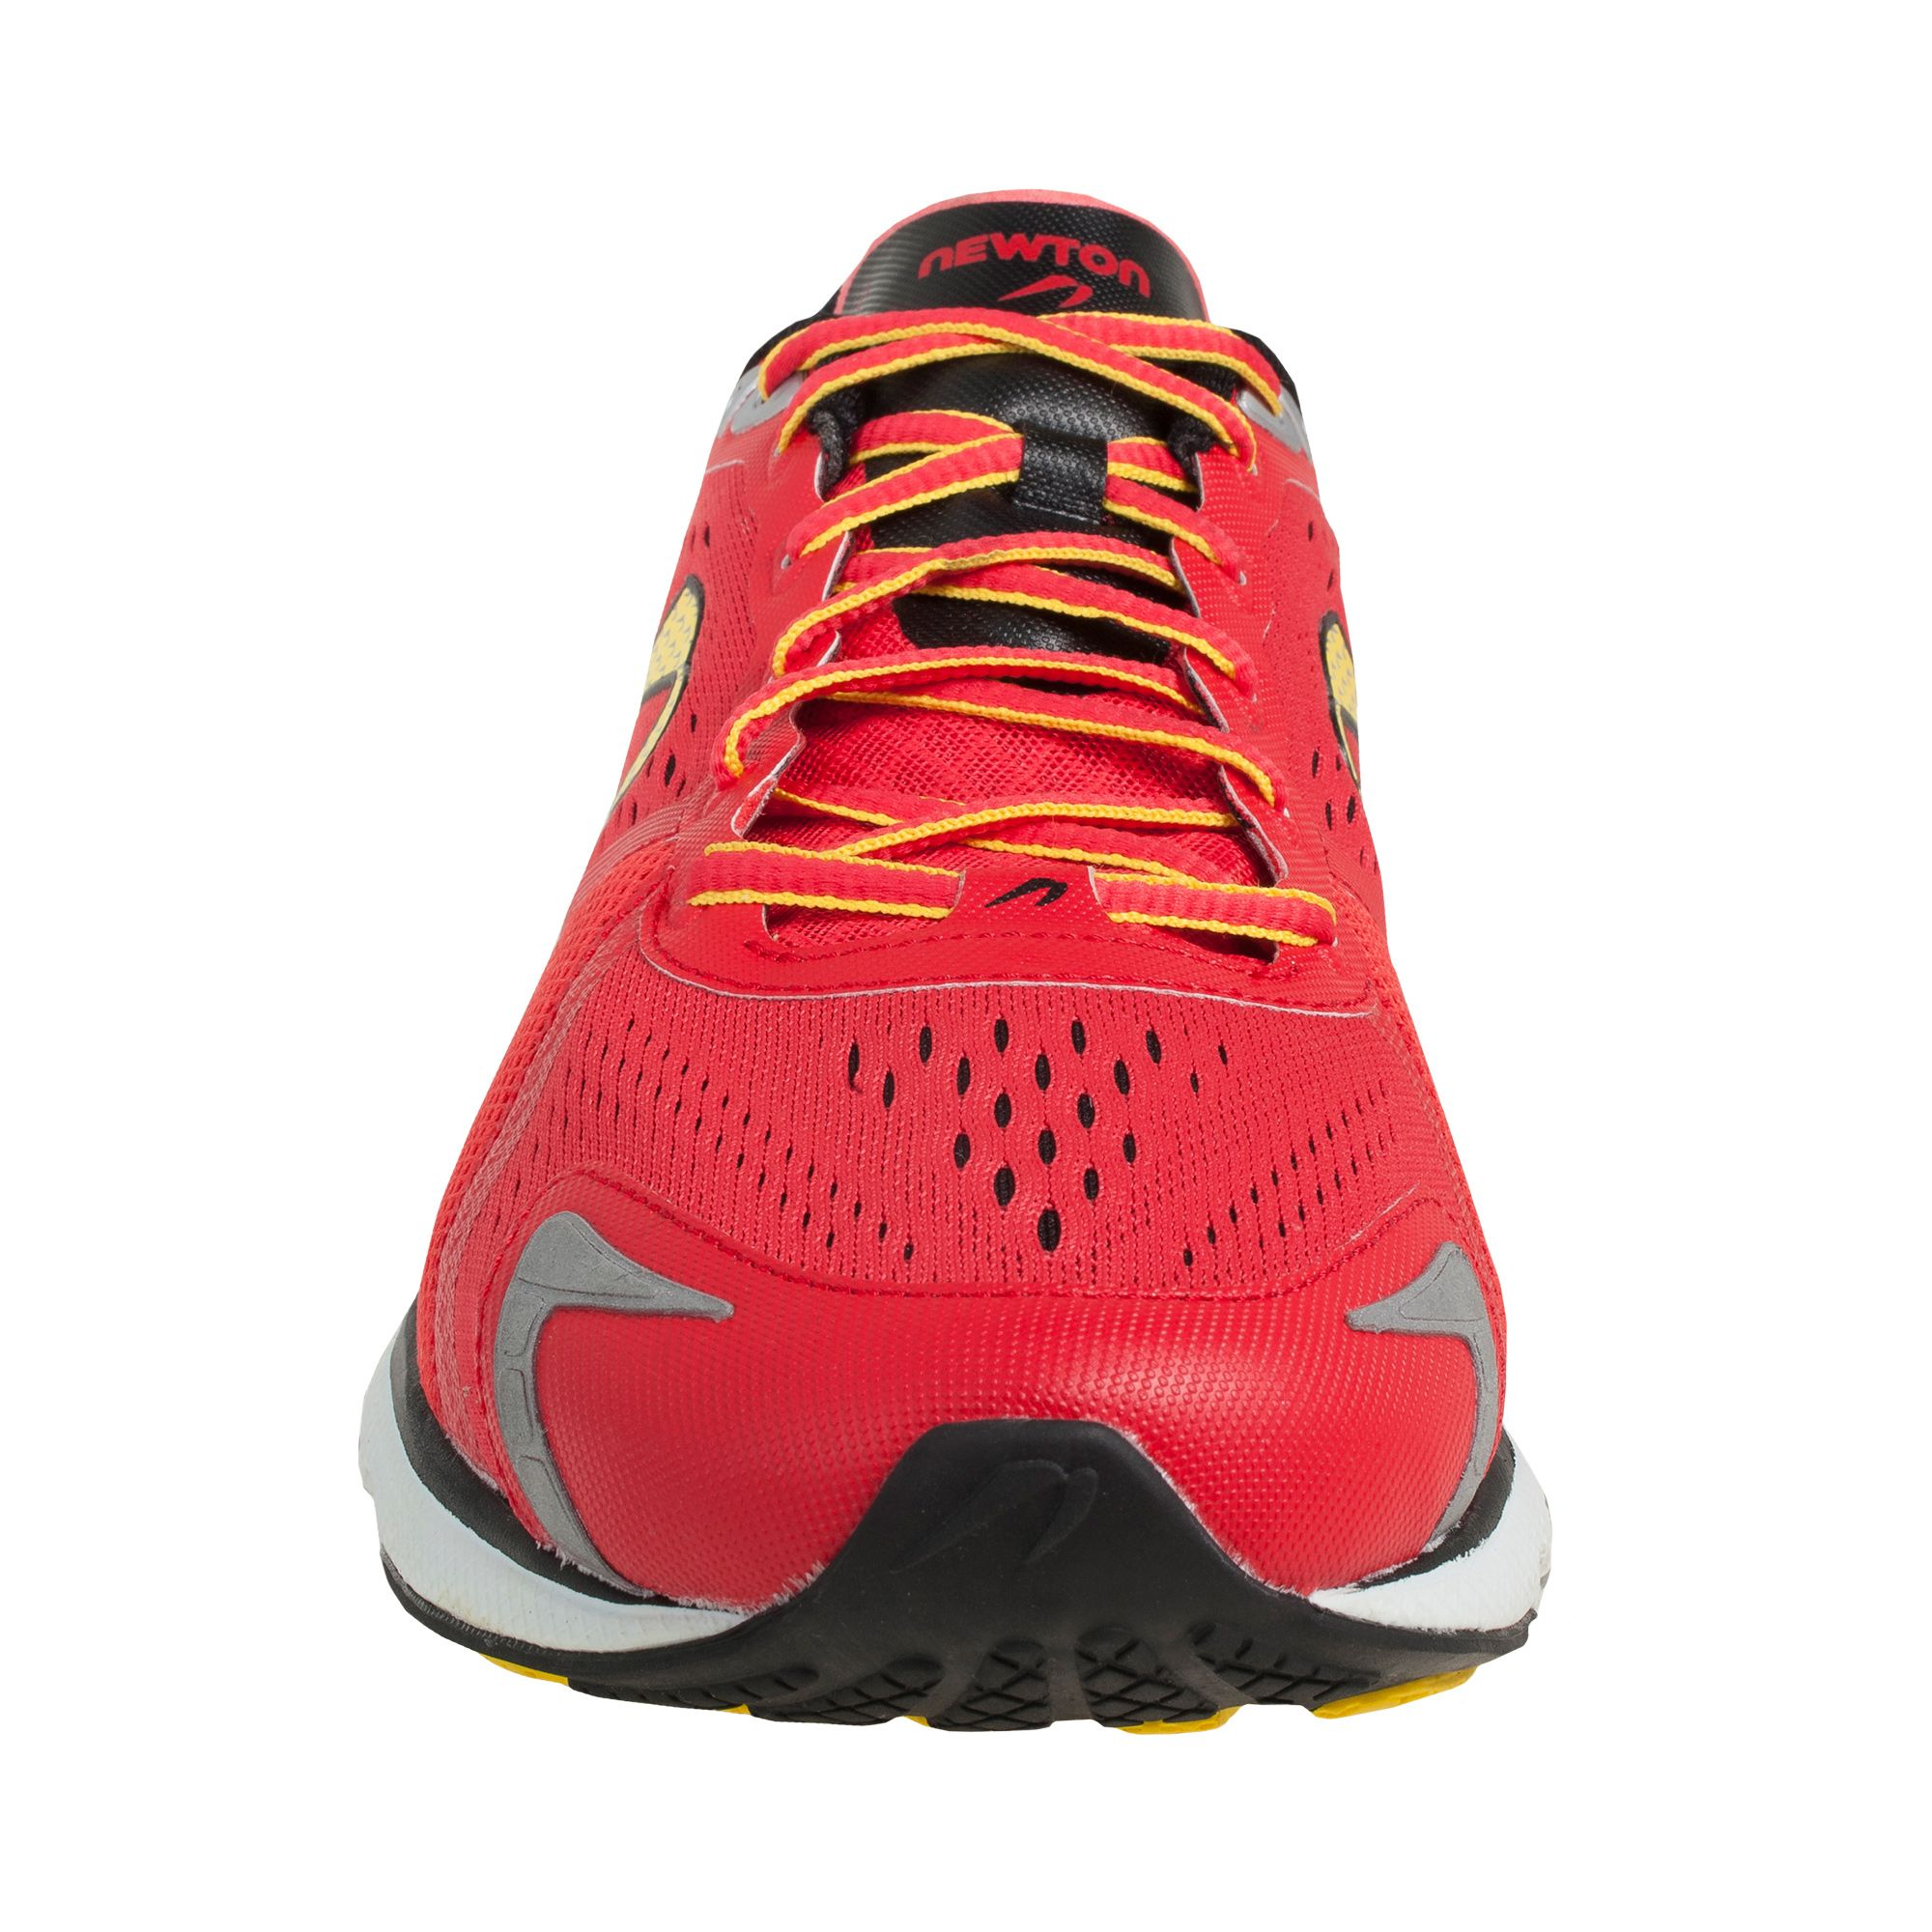 Newton Gravity Iv Neutral Mens Running Shoes